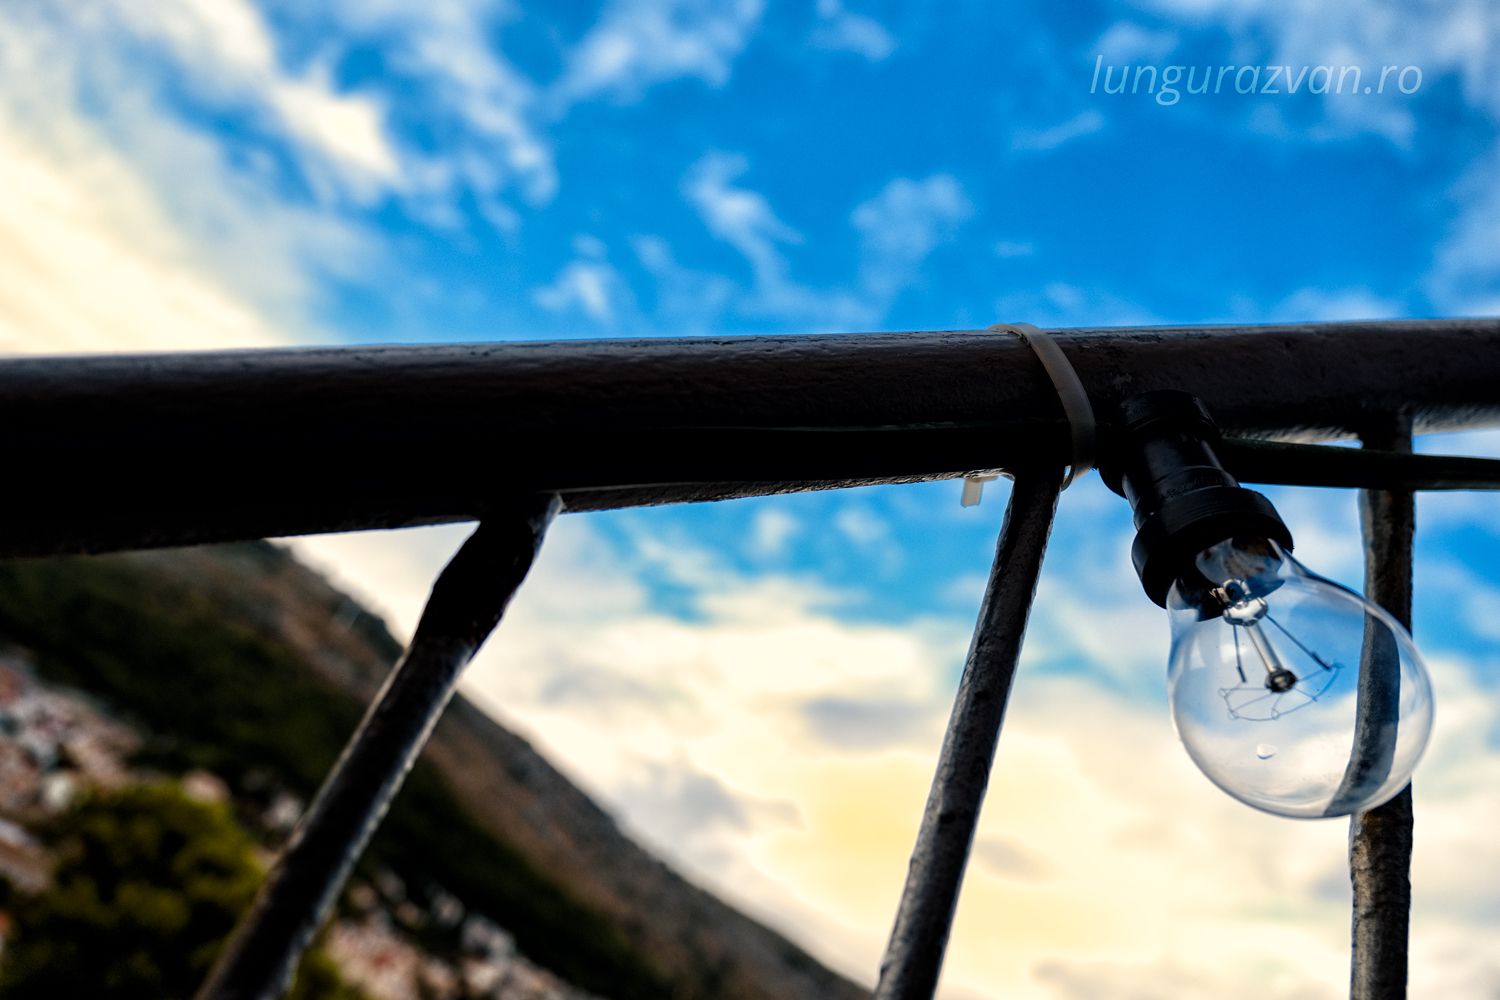 Waiting for His Time, Blue sky behind light bulb attached to handrail